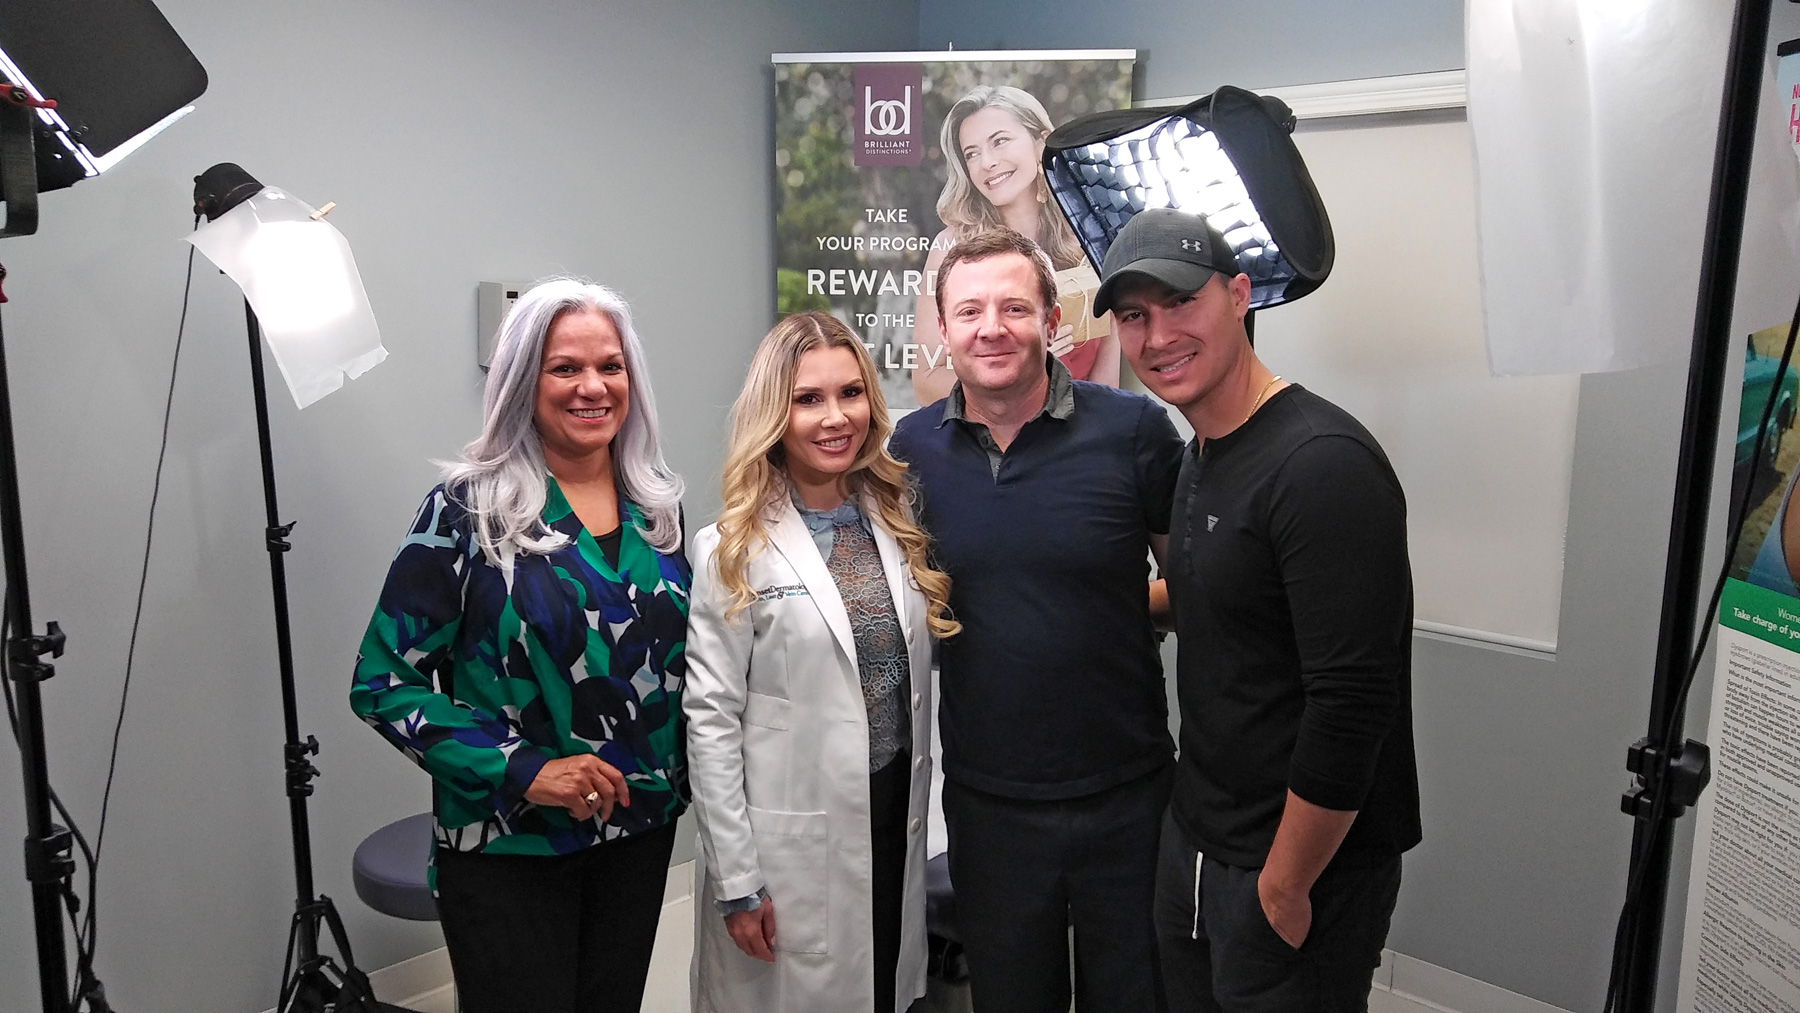 It's a wrap! Mission accomplished successfully. BOTOX®, Dysport® and Xeomin® educational video at Sunset Dermatology.